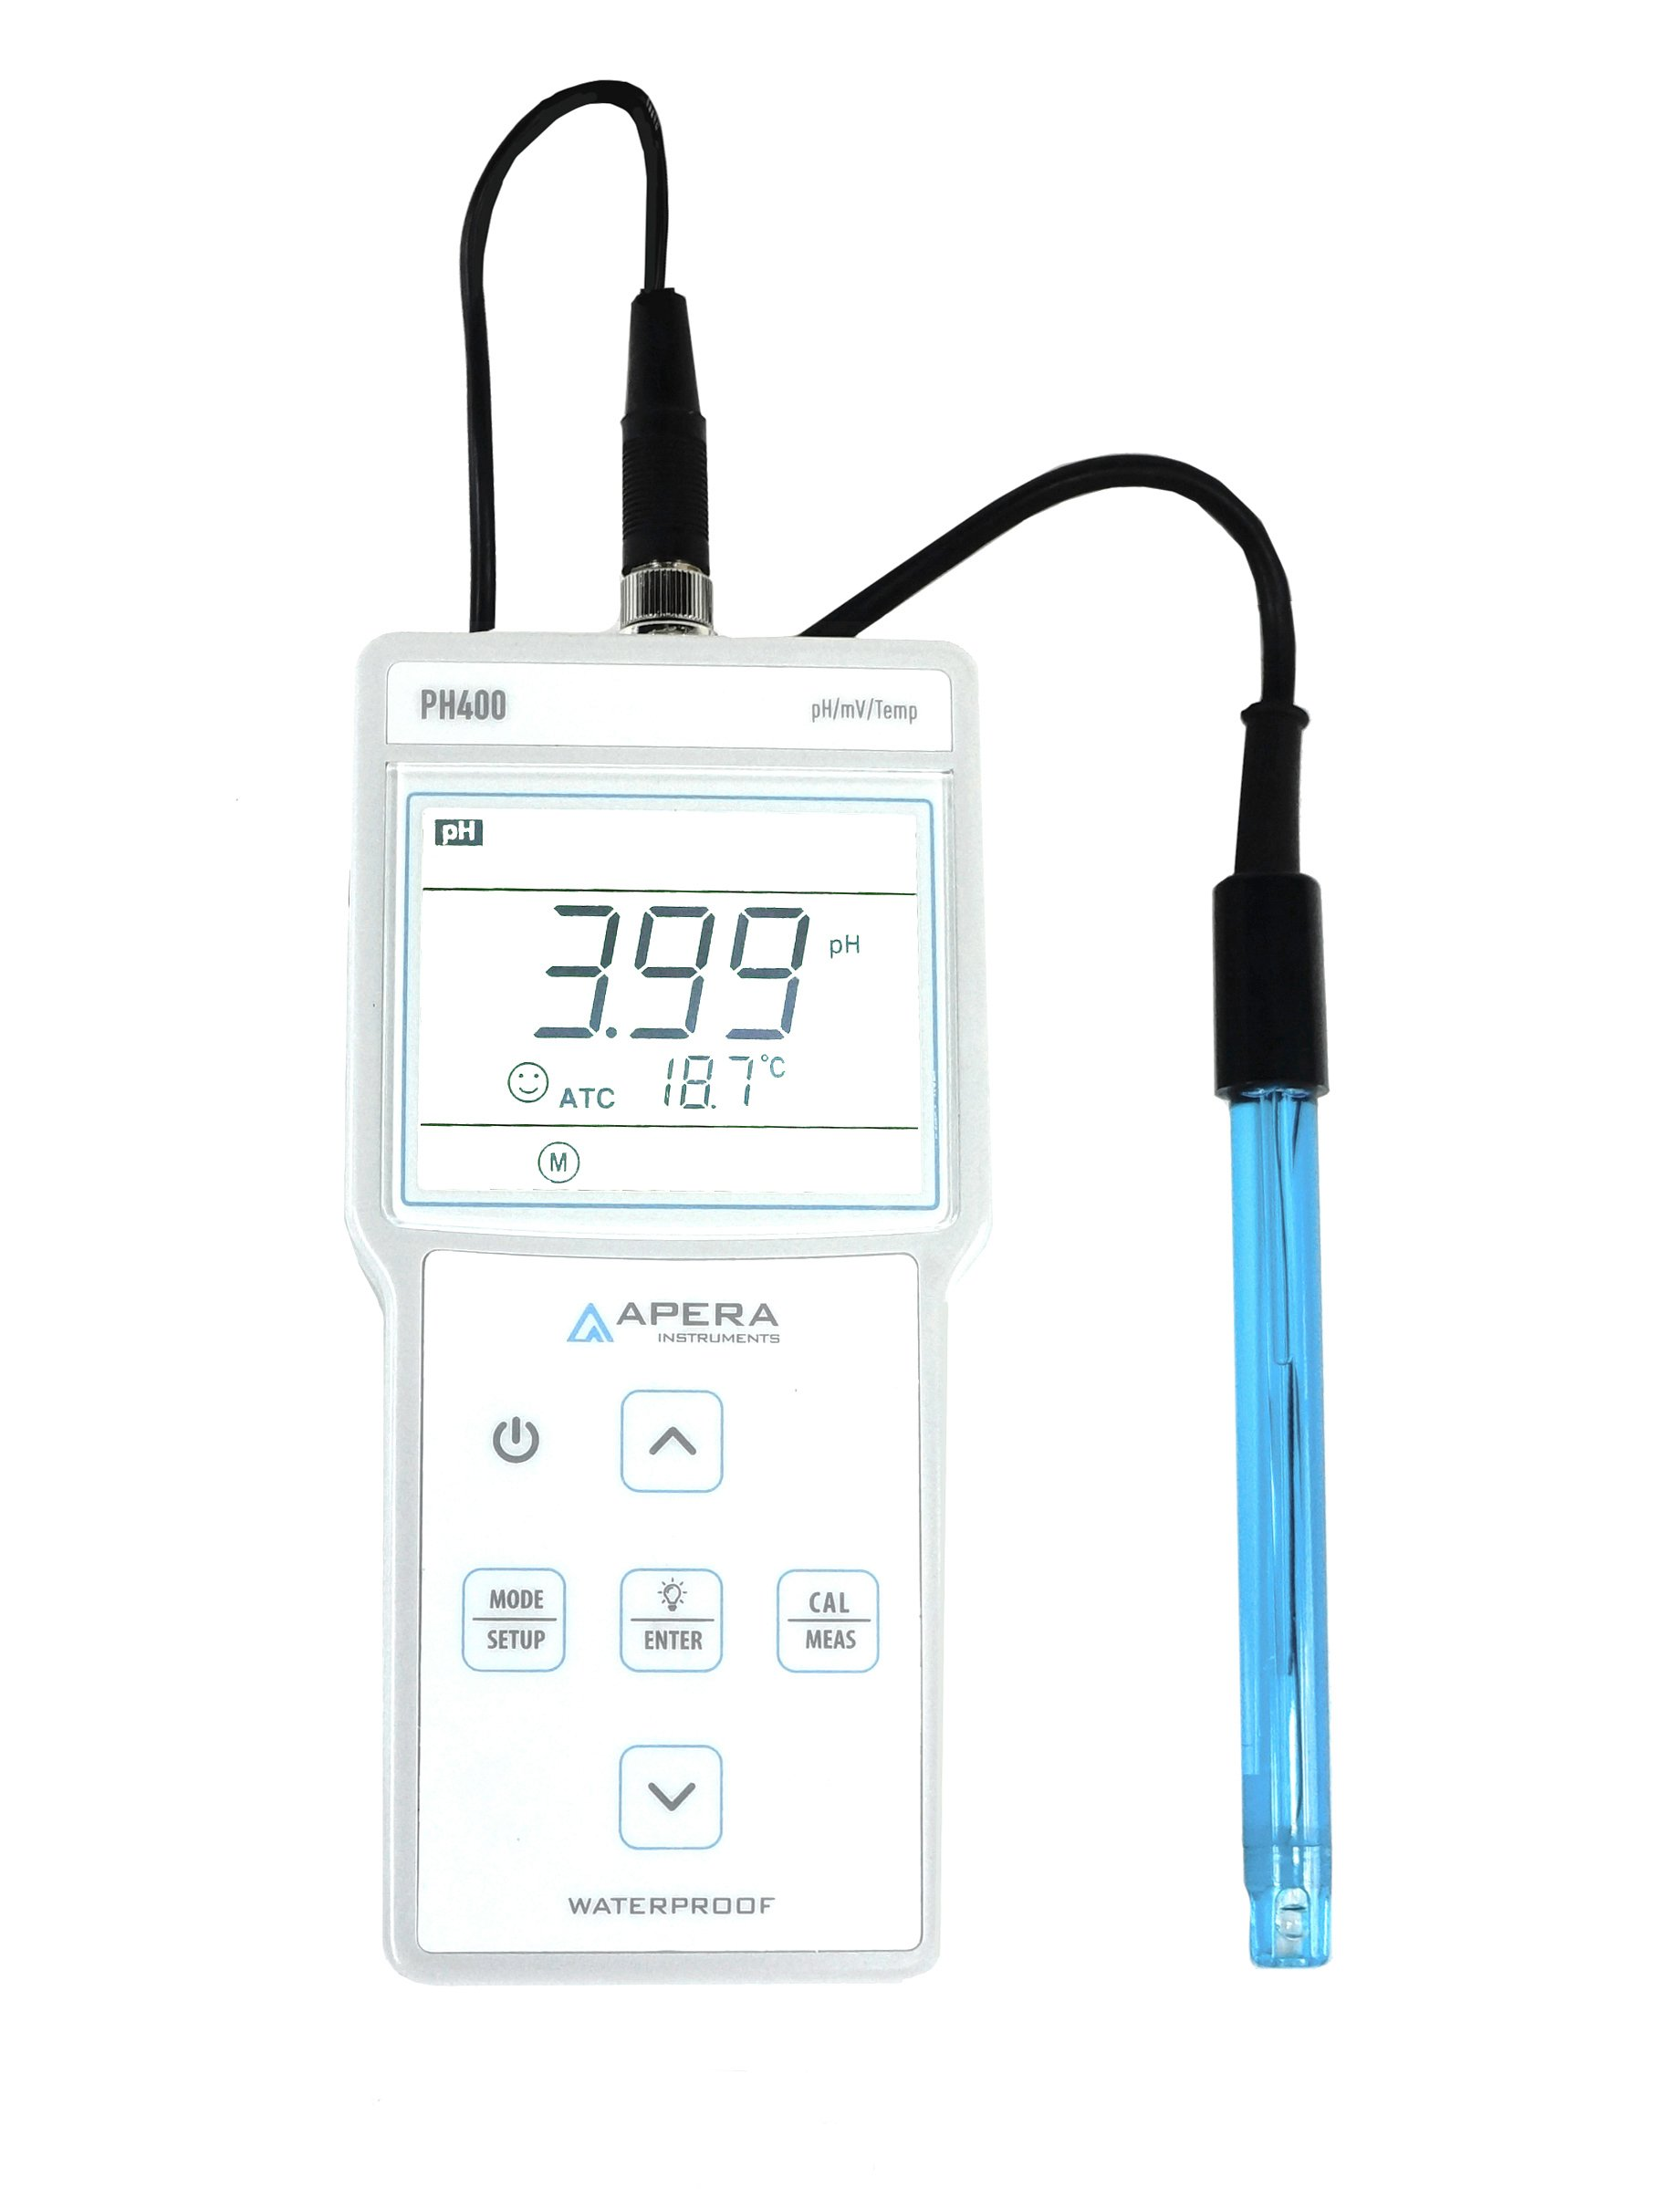 PH400 Portable pH Meter Kit, 0.01 pH Accuracy, 0-14.00 pH Measuring Range, 3ft Probe, 3-Point Auto Calibration, pre-mixed buffers included